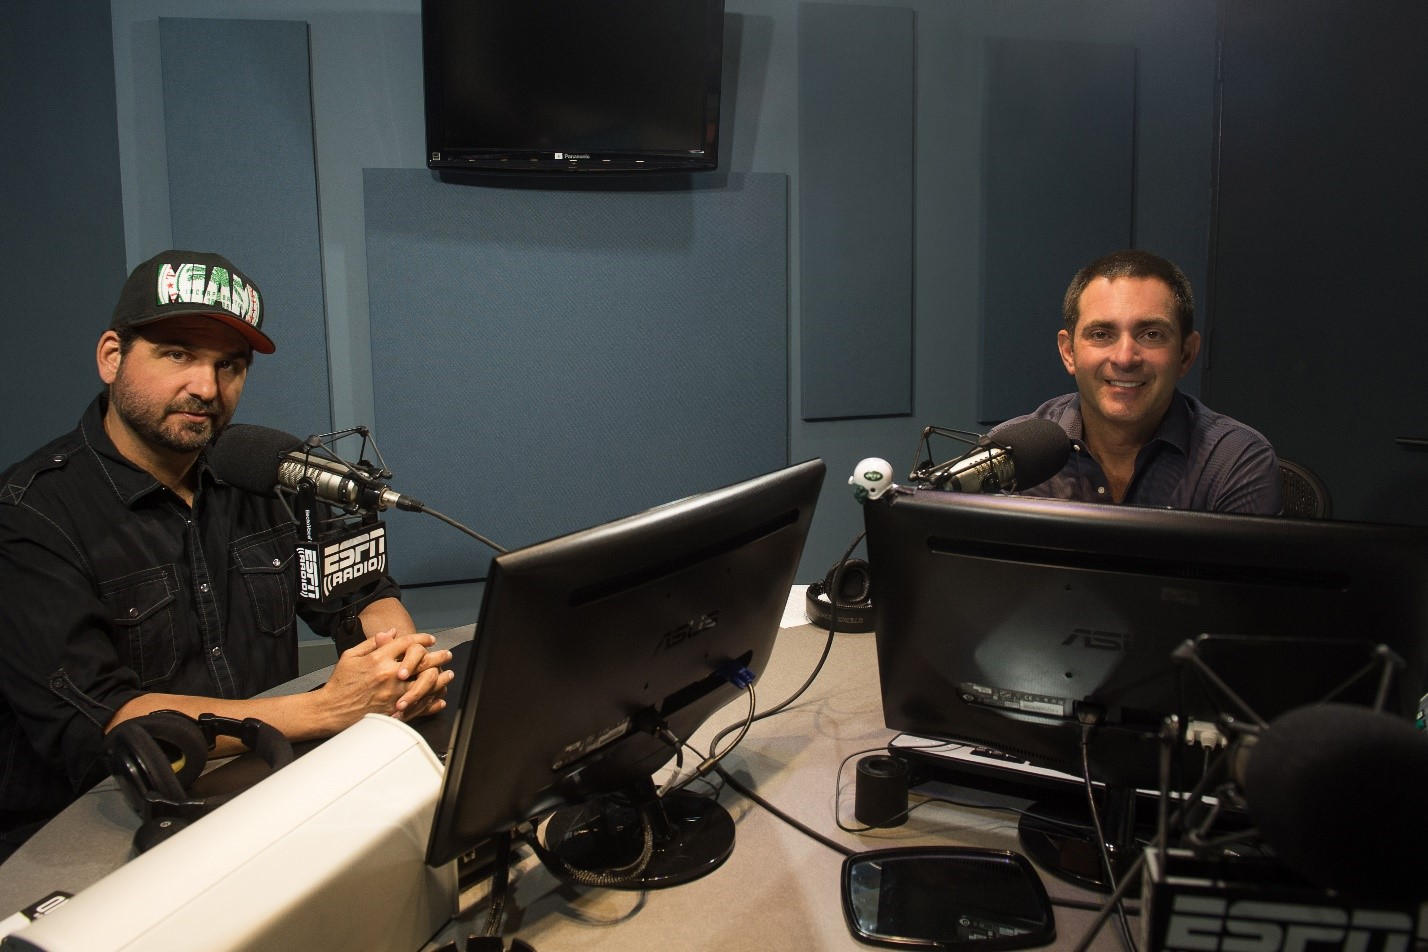 Dan Le Batard Show with Stugotz